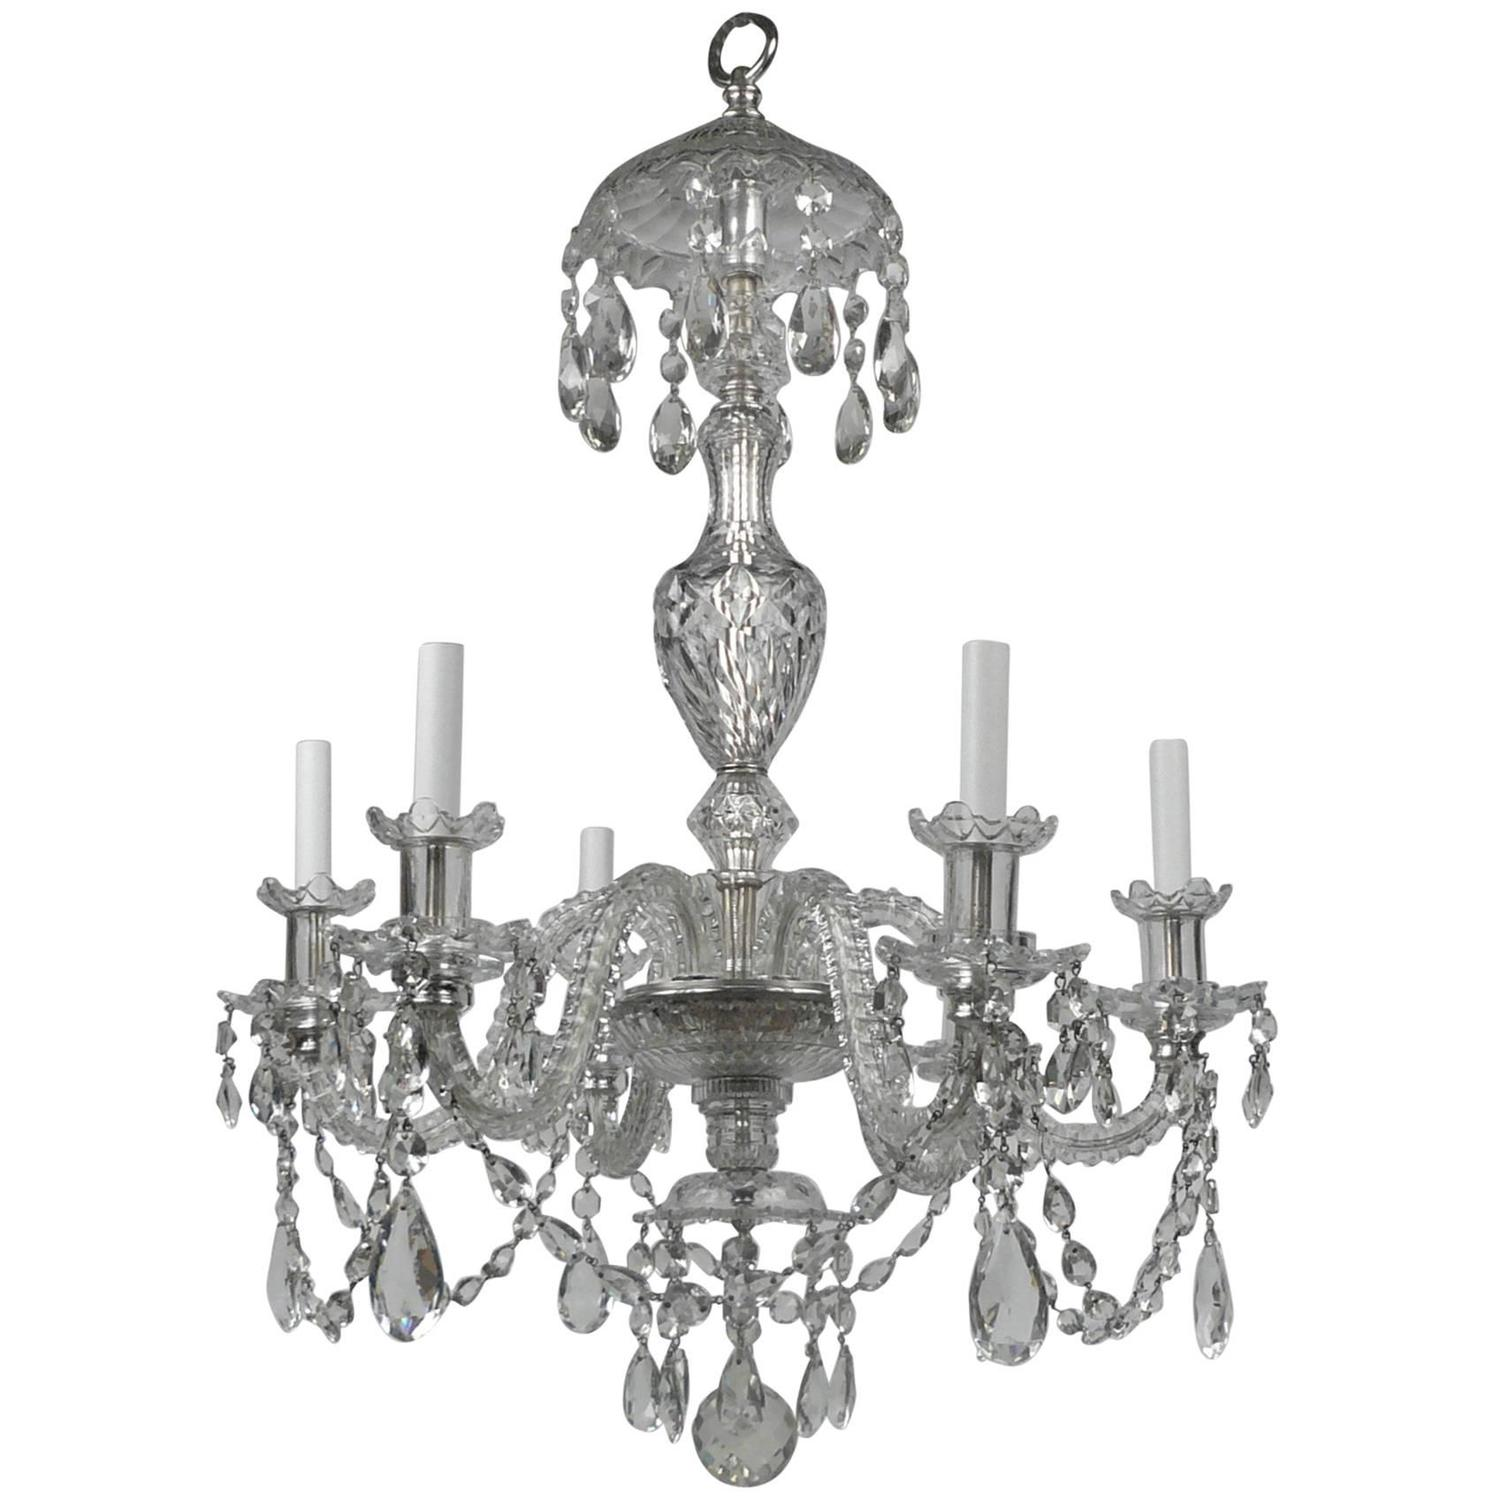 amazon feather lights oofay dp chandelier tuscan room pendant modern bedroom with round living elegant light in dining lgiht com ae drops crystal